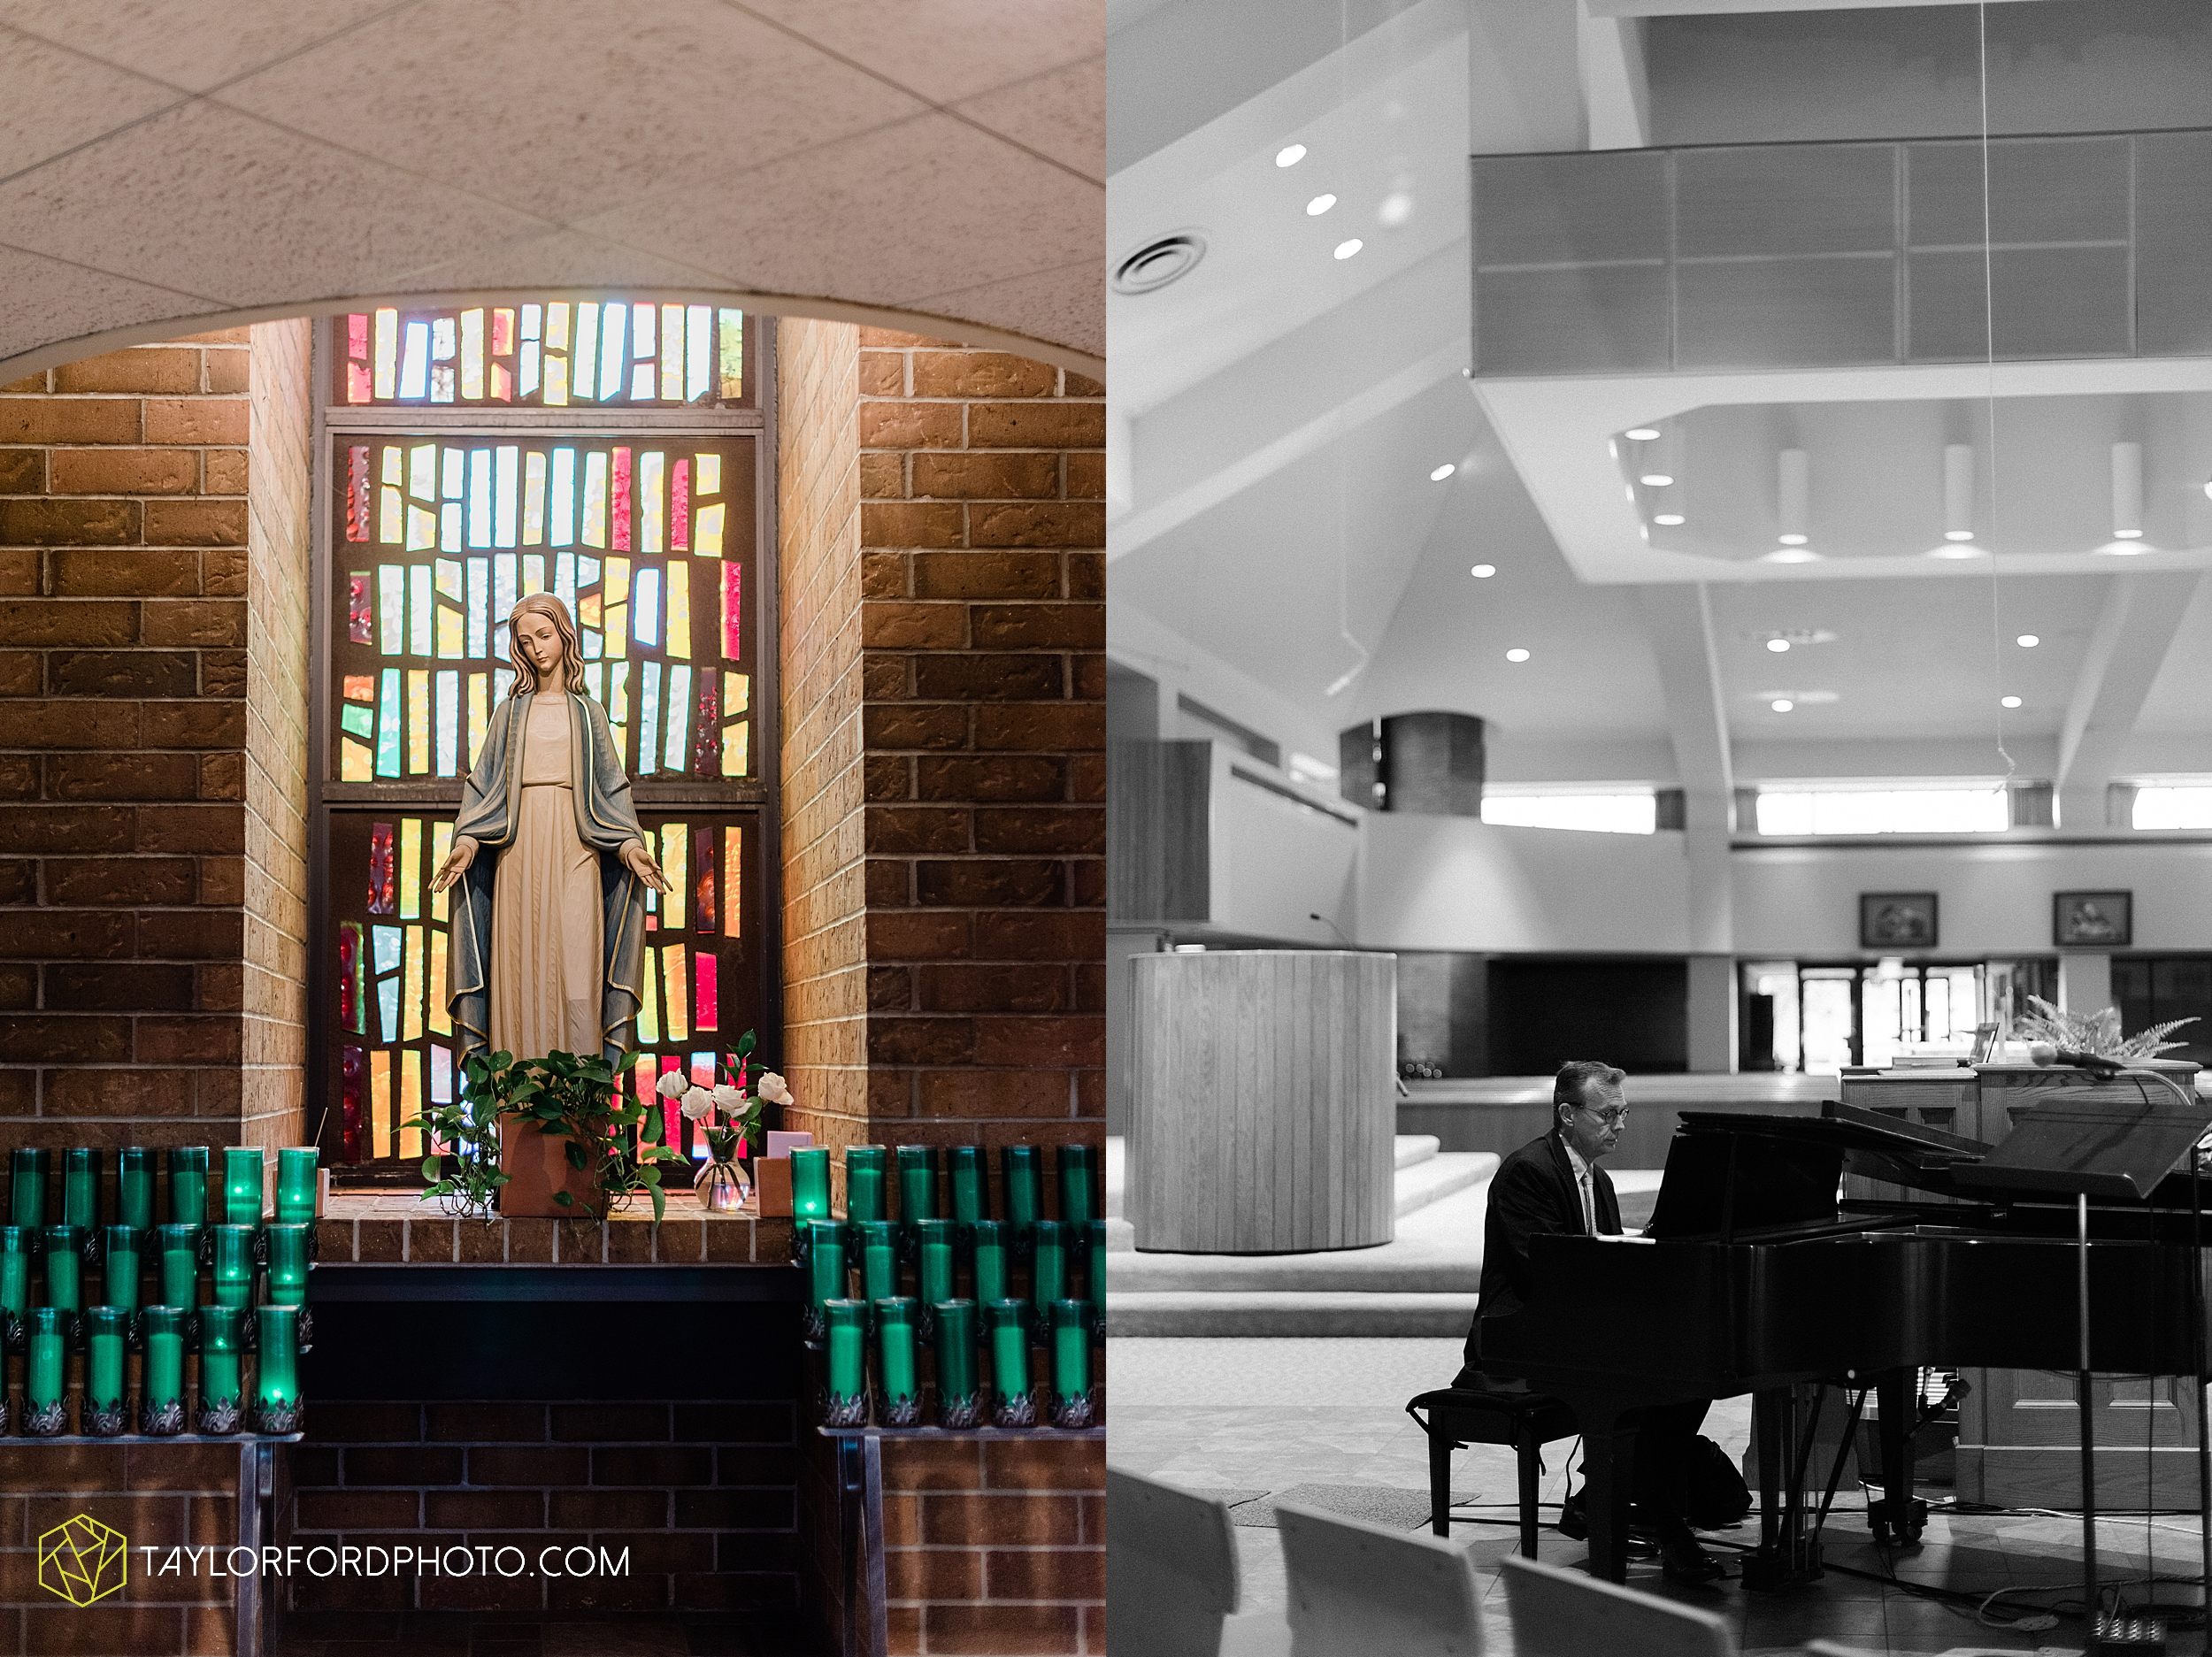 sullivan-st-francis-university-performing-arts-center-usf-saint-charles-borromeo-catholic-church-downtown-fort-wayne-indiana-wedding-photography-taylor-ford-hirschy-photographer_3221.jpg